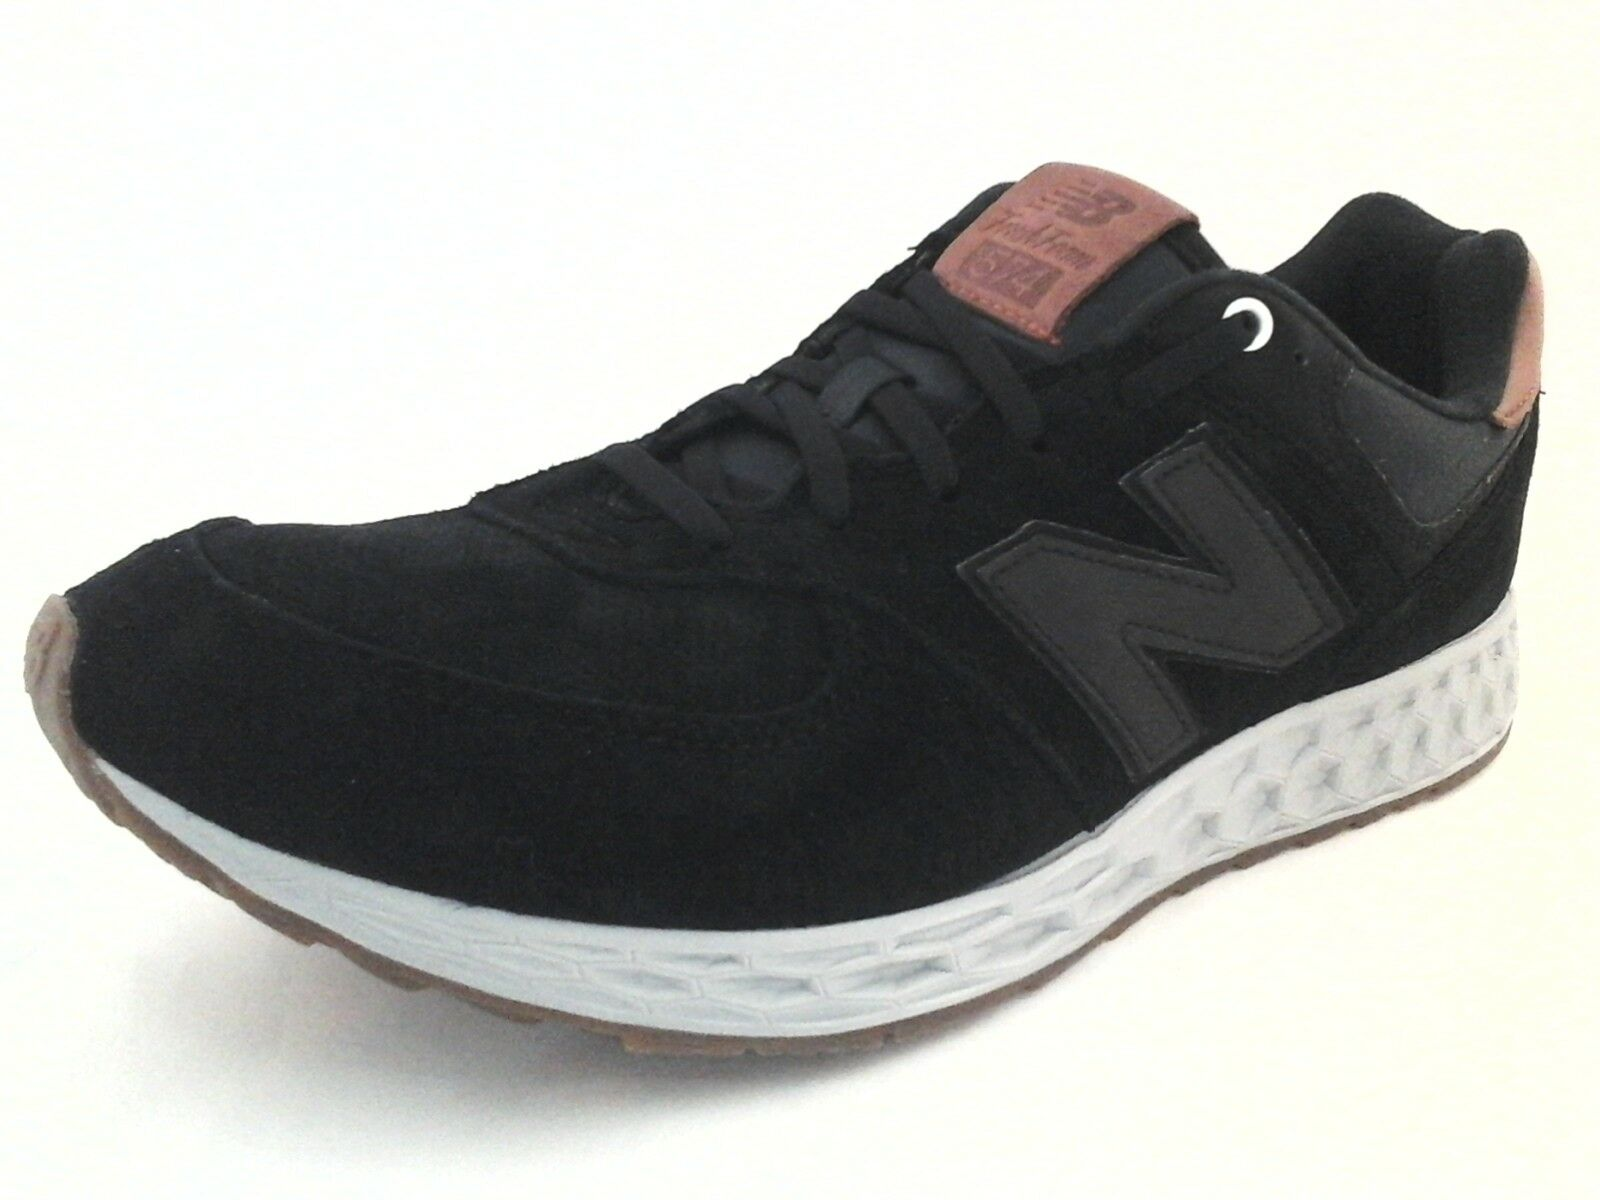 NEW BALANCE 574 Fresh Foam Mens Running shoes Black Suede Brown US 12 46.5  149